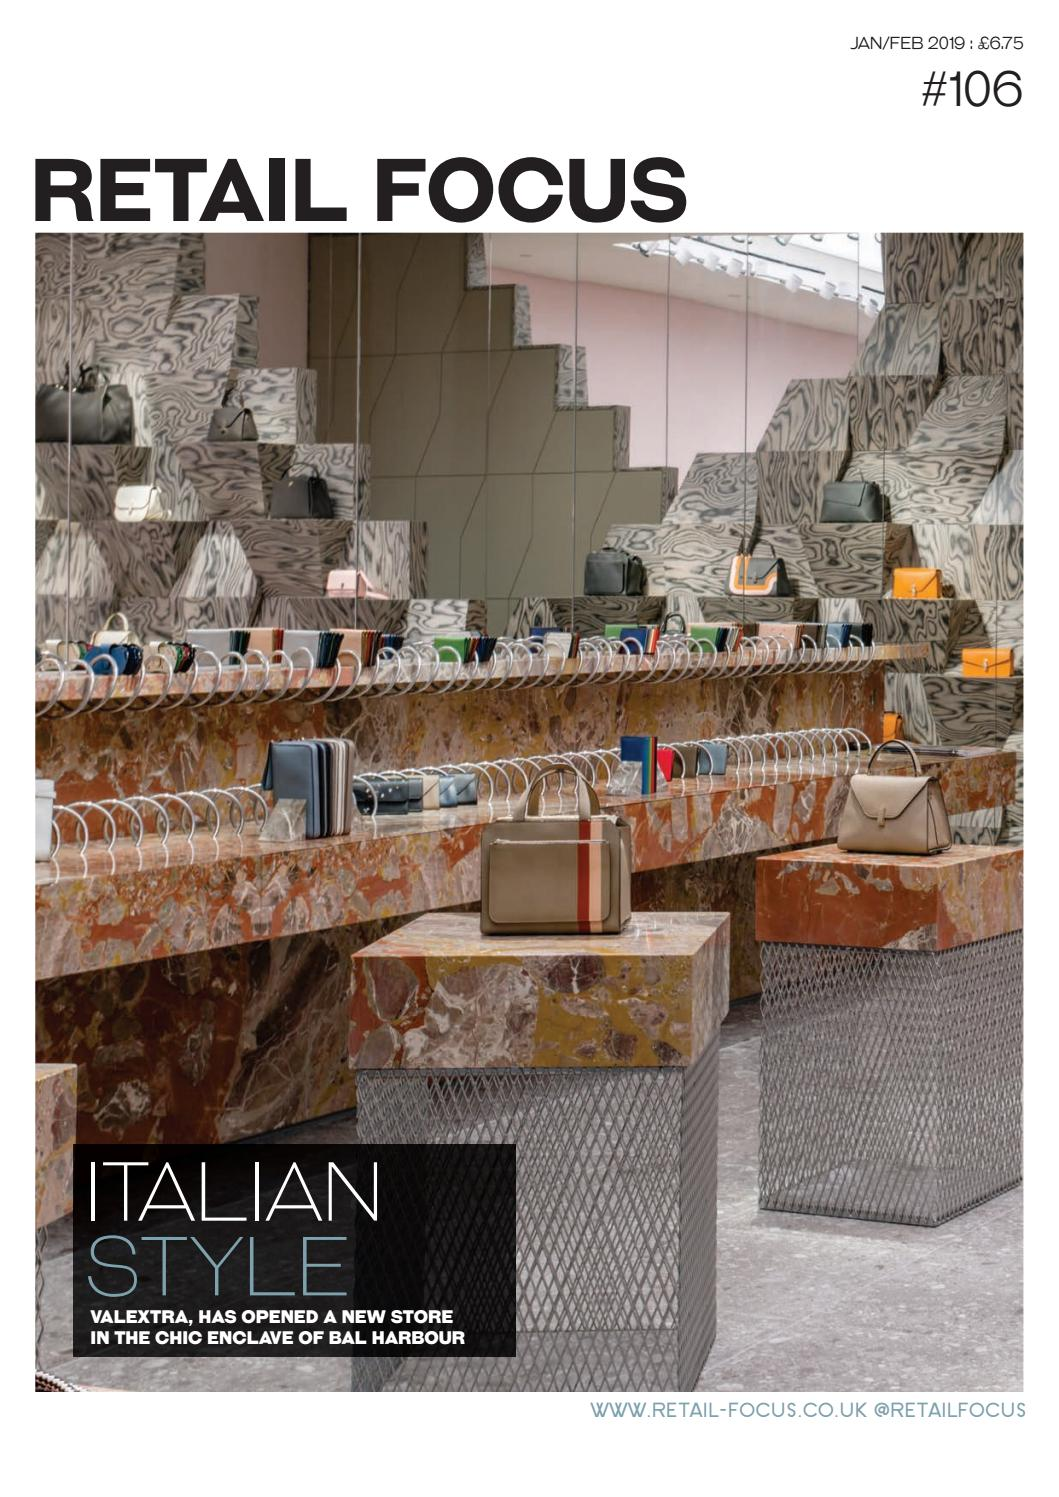 22016835a73 Retail Focus January February 2019 by Retail Focus - issuu